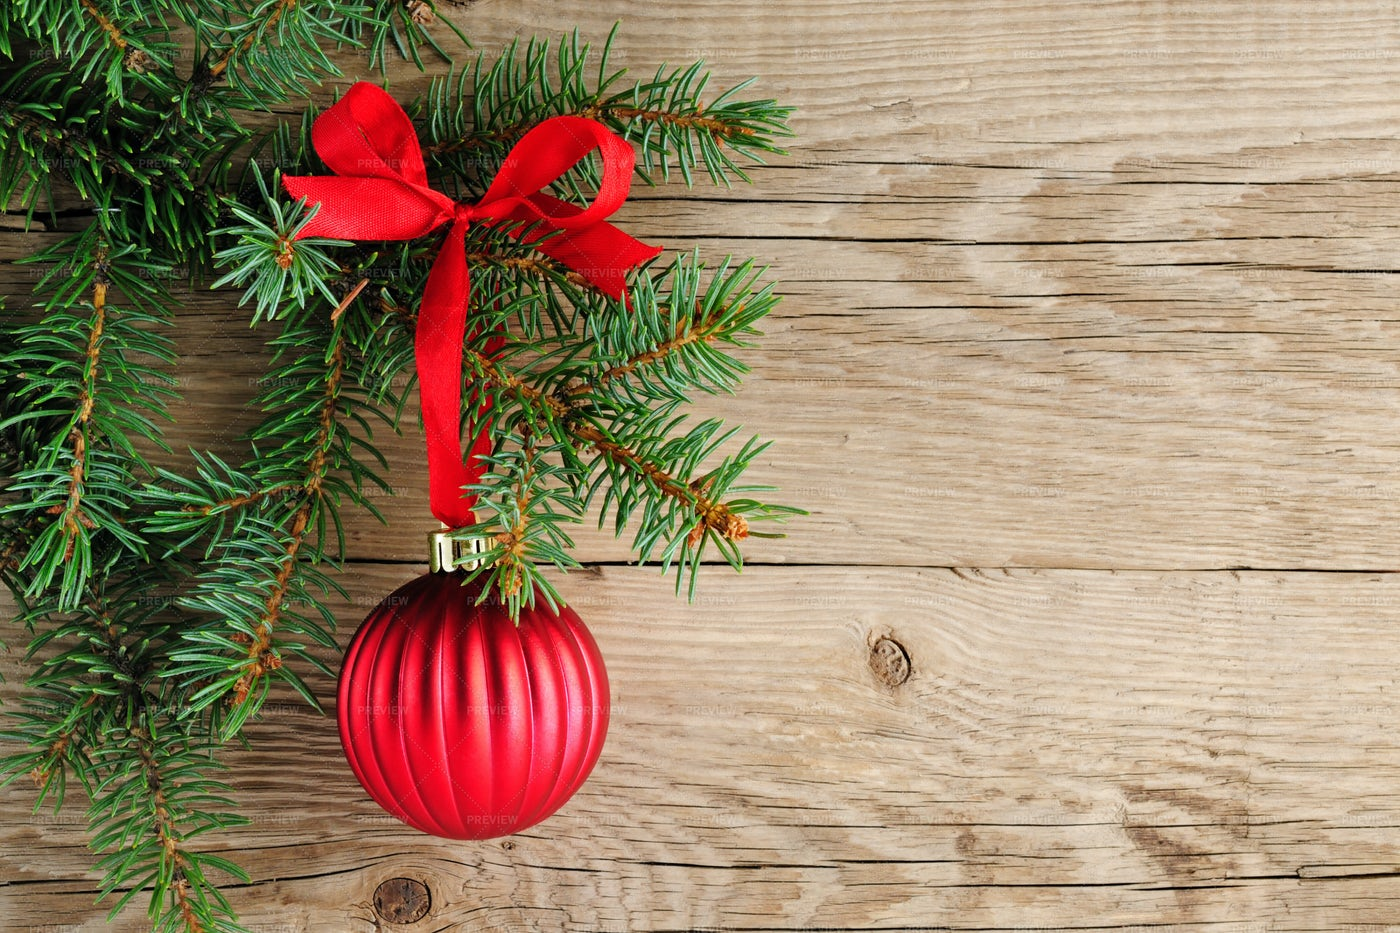 Spruce Branches With Decoration: Stock Photos